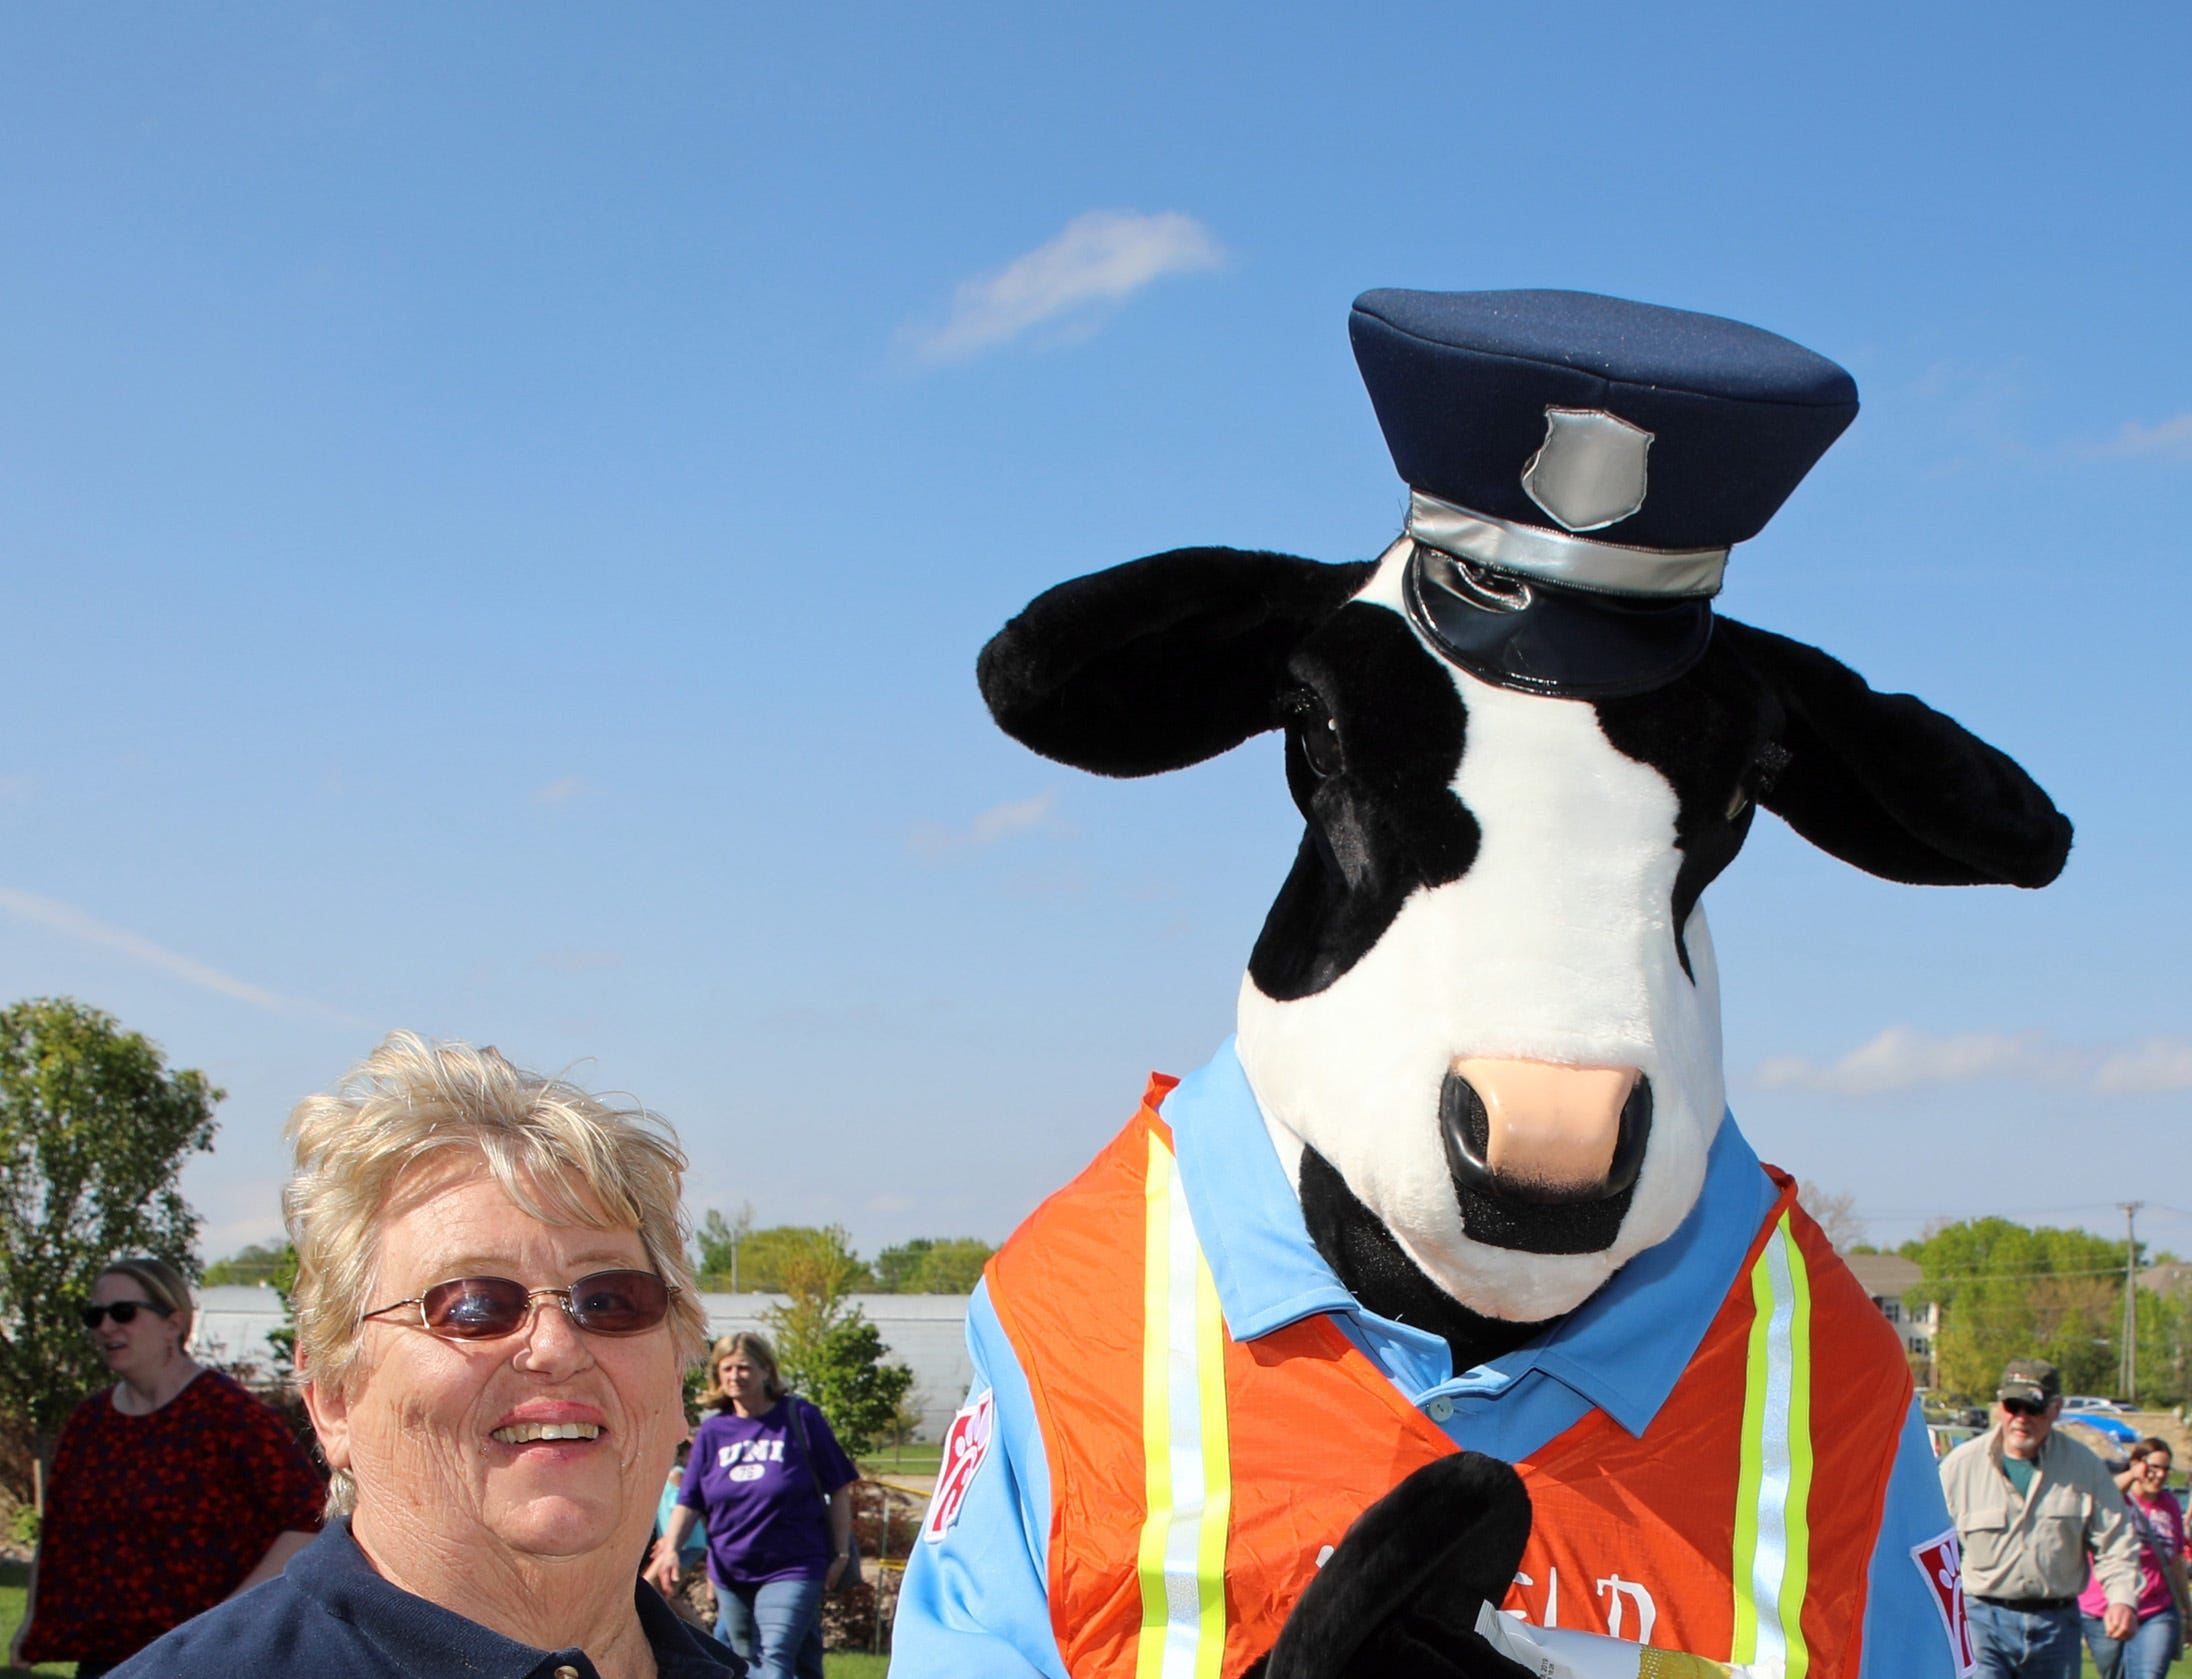 Joan Quinlin of the Ankeny Citizen's Police Academy serves cookies to the cow from Chick Fil-A during the Ankeny Police Week Community Picnic on Tuesday, May 14, 2019 at the Ankeny Police Headquarters located at 411 SW Ordnance Road. The event featured a tour of the police station, magician Jonathon May, free Chick Fil-A sandwiches for the first 1,000 guests, free Kona Ice, temporary tattoos, and a great opportunity to meet the officers who protect and serve the city of Ankeny.